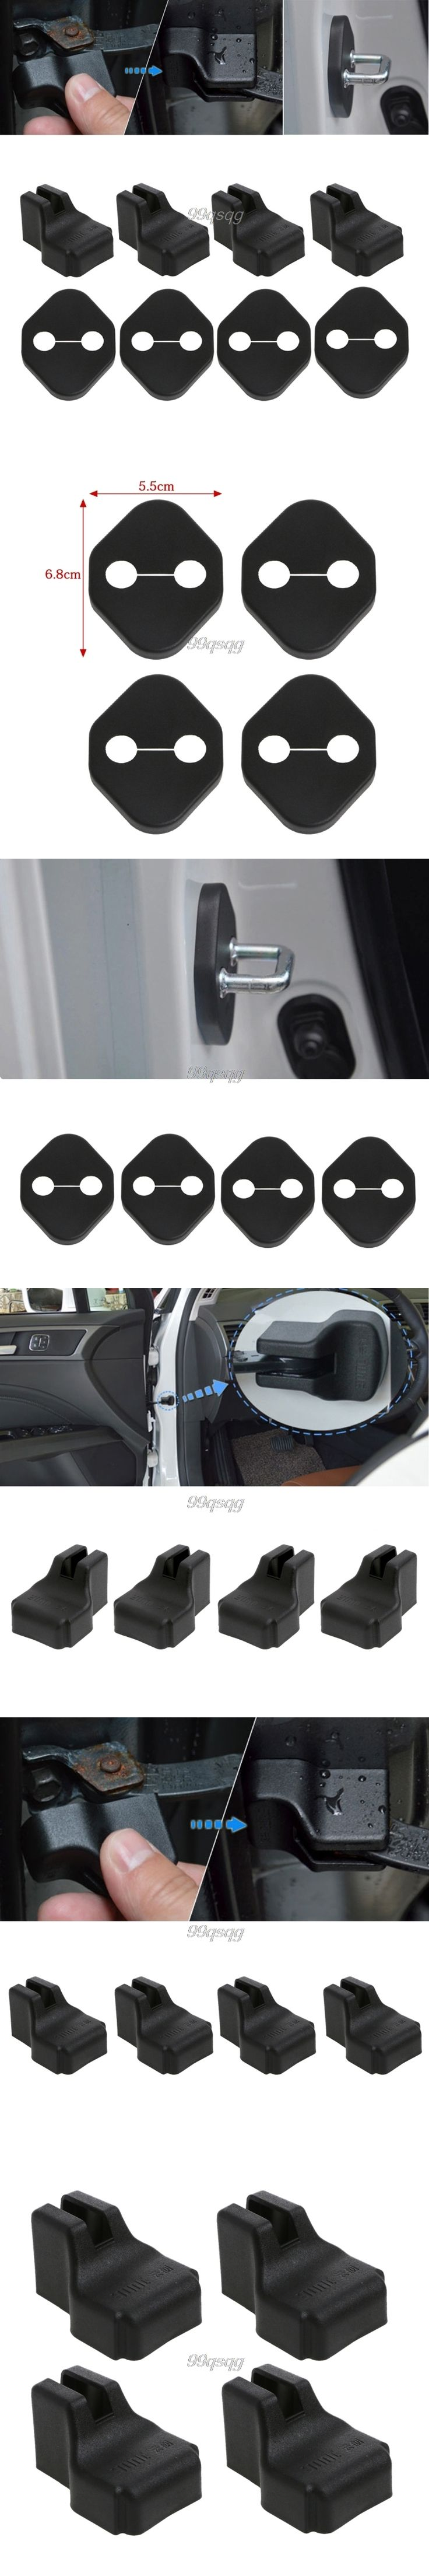 Car Door Lock Cover Stopper Protection For KIA RIO K2 Soul Hyundai Solaris Verna Drop shipping